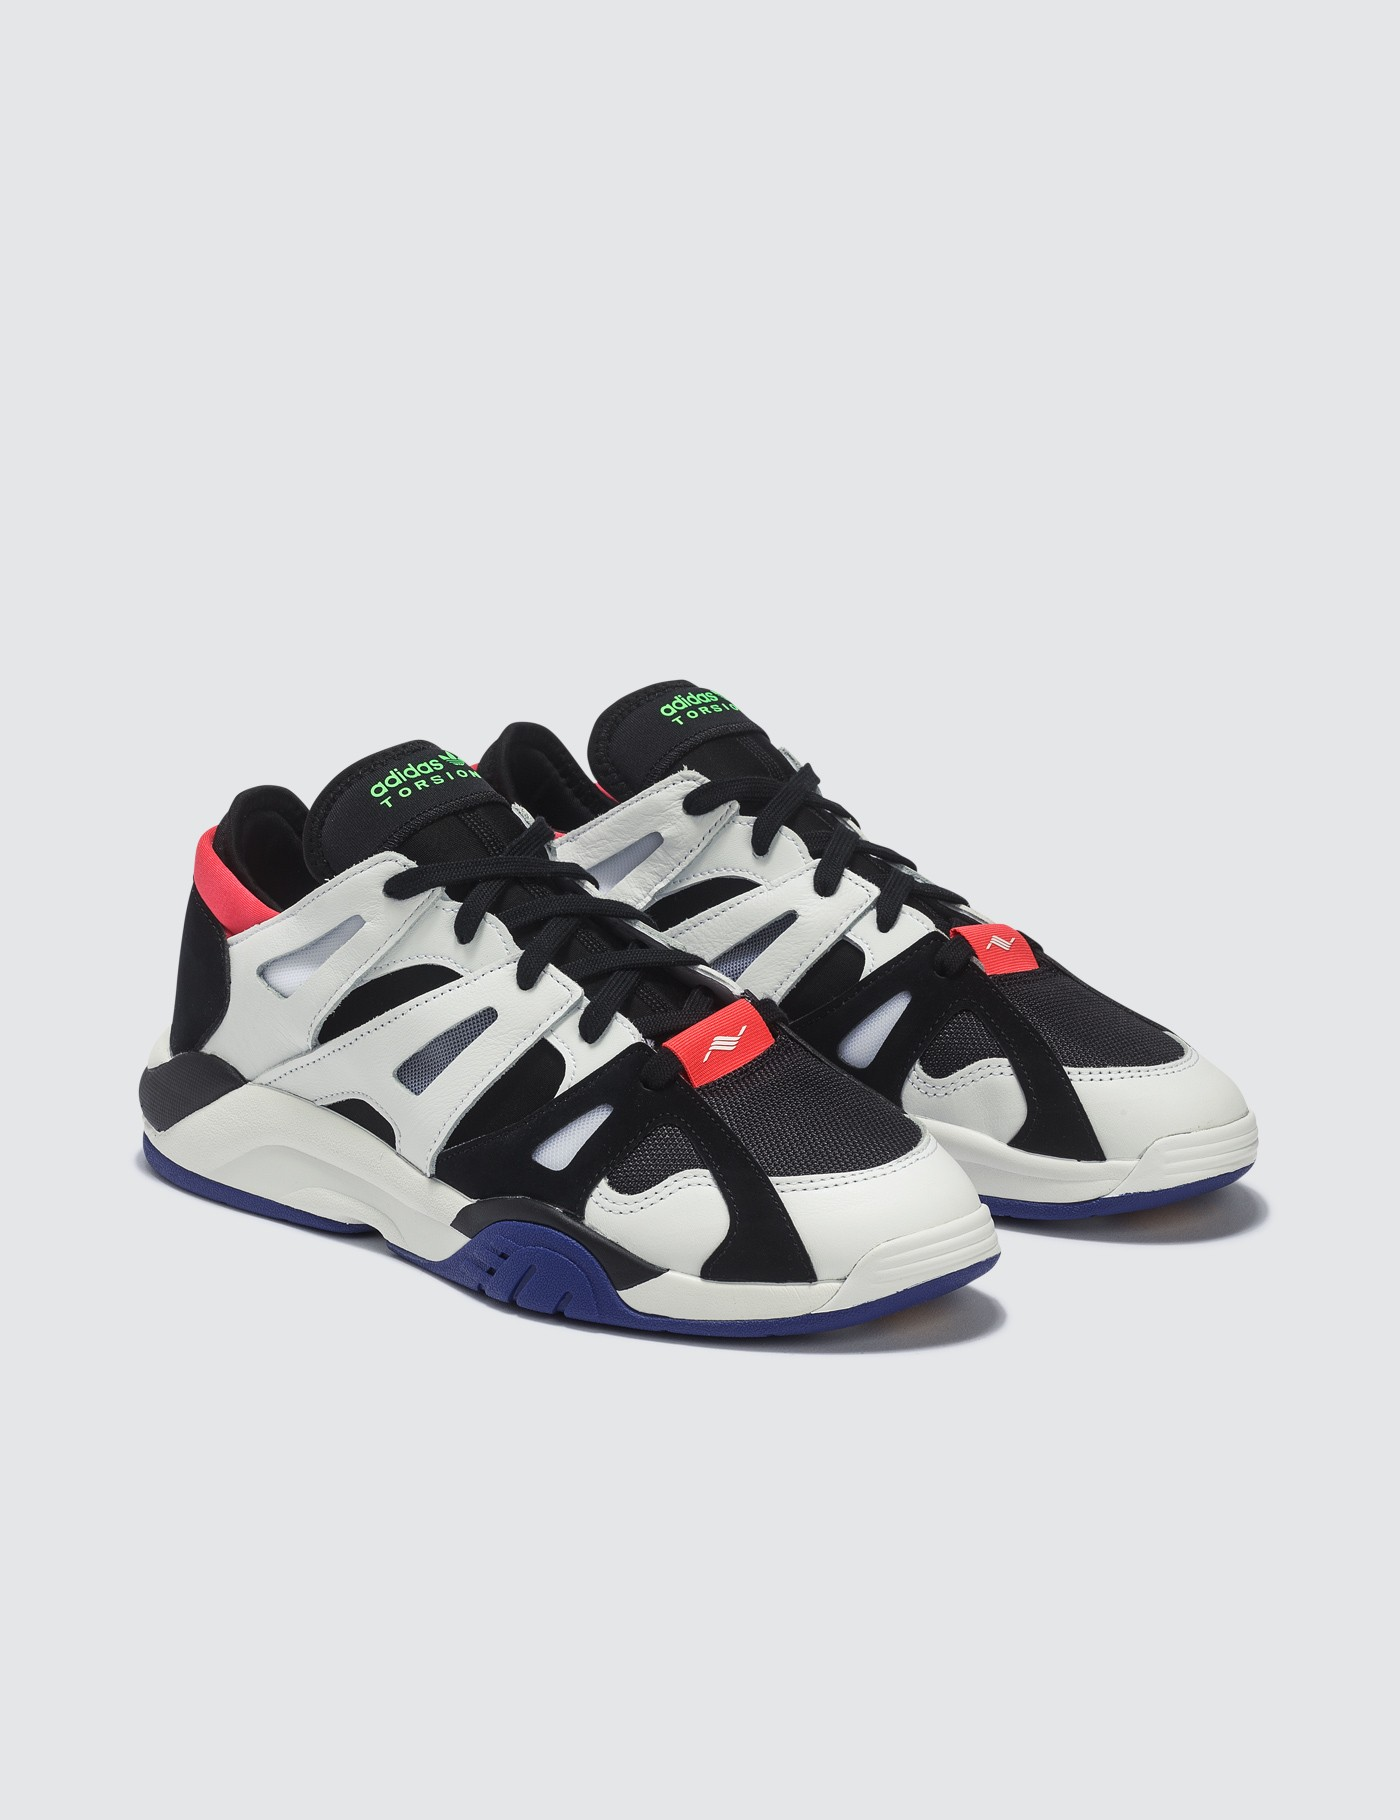 Adidas Originals Dimension Low Top Sneakers